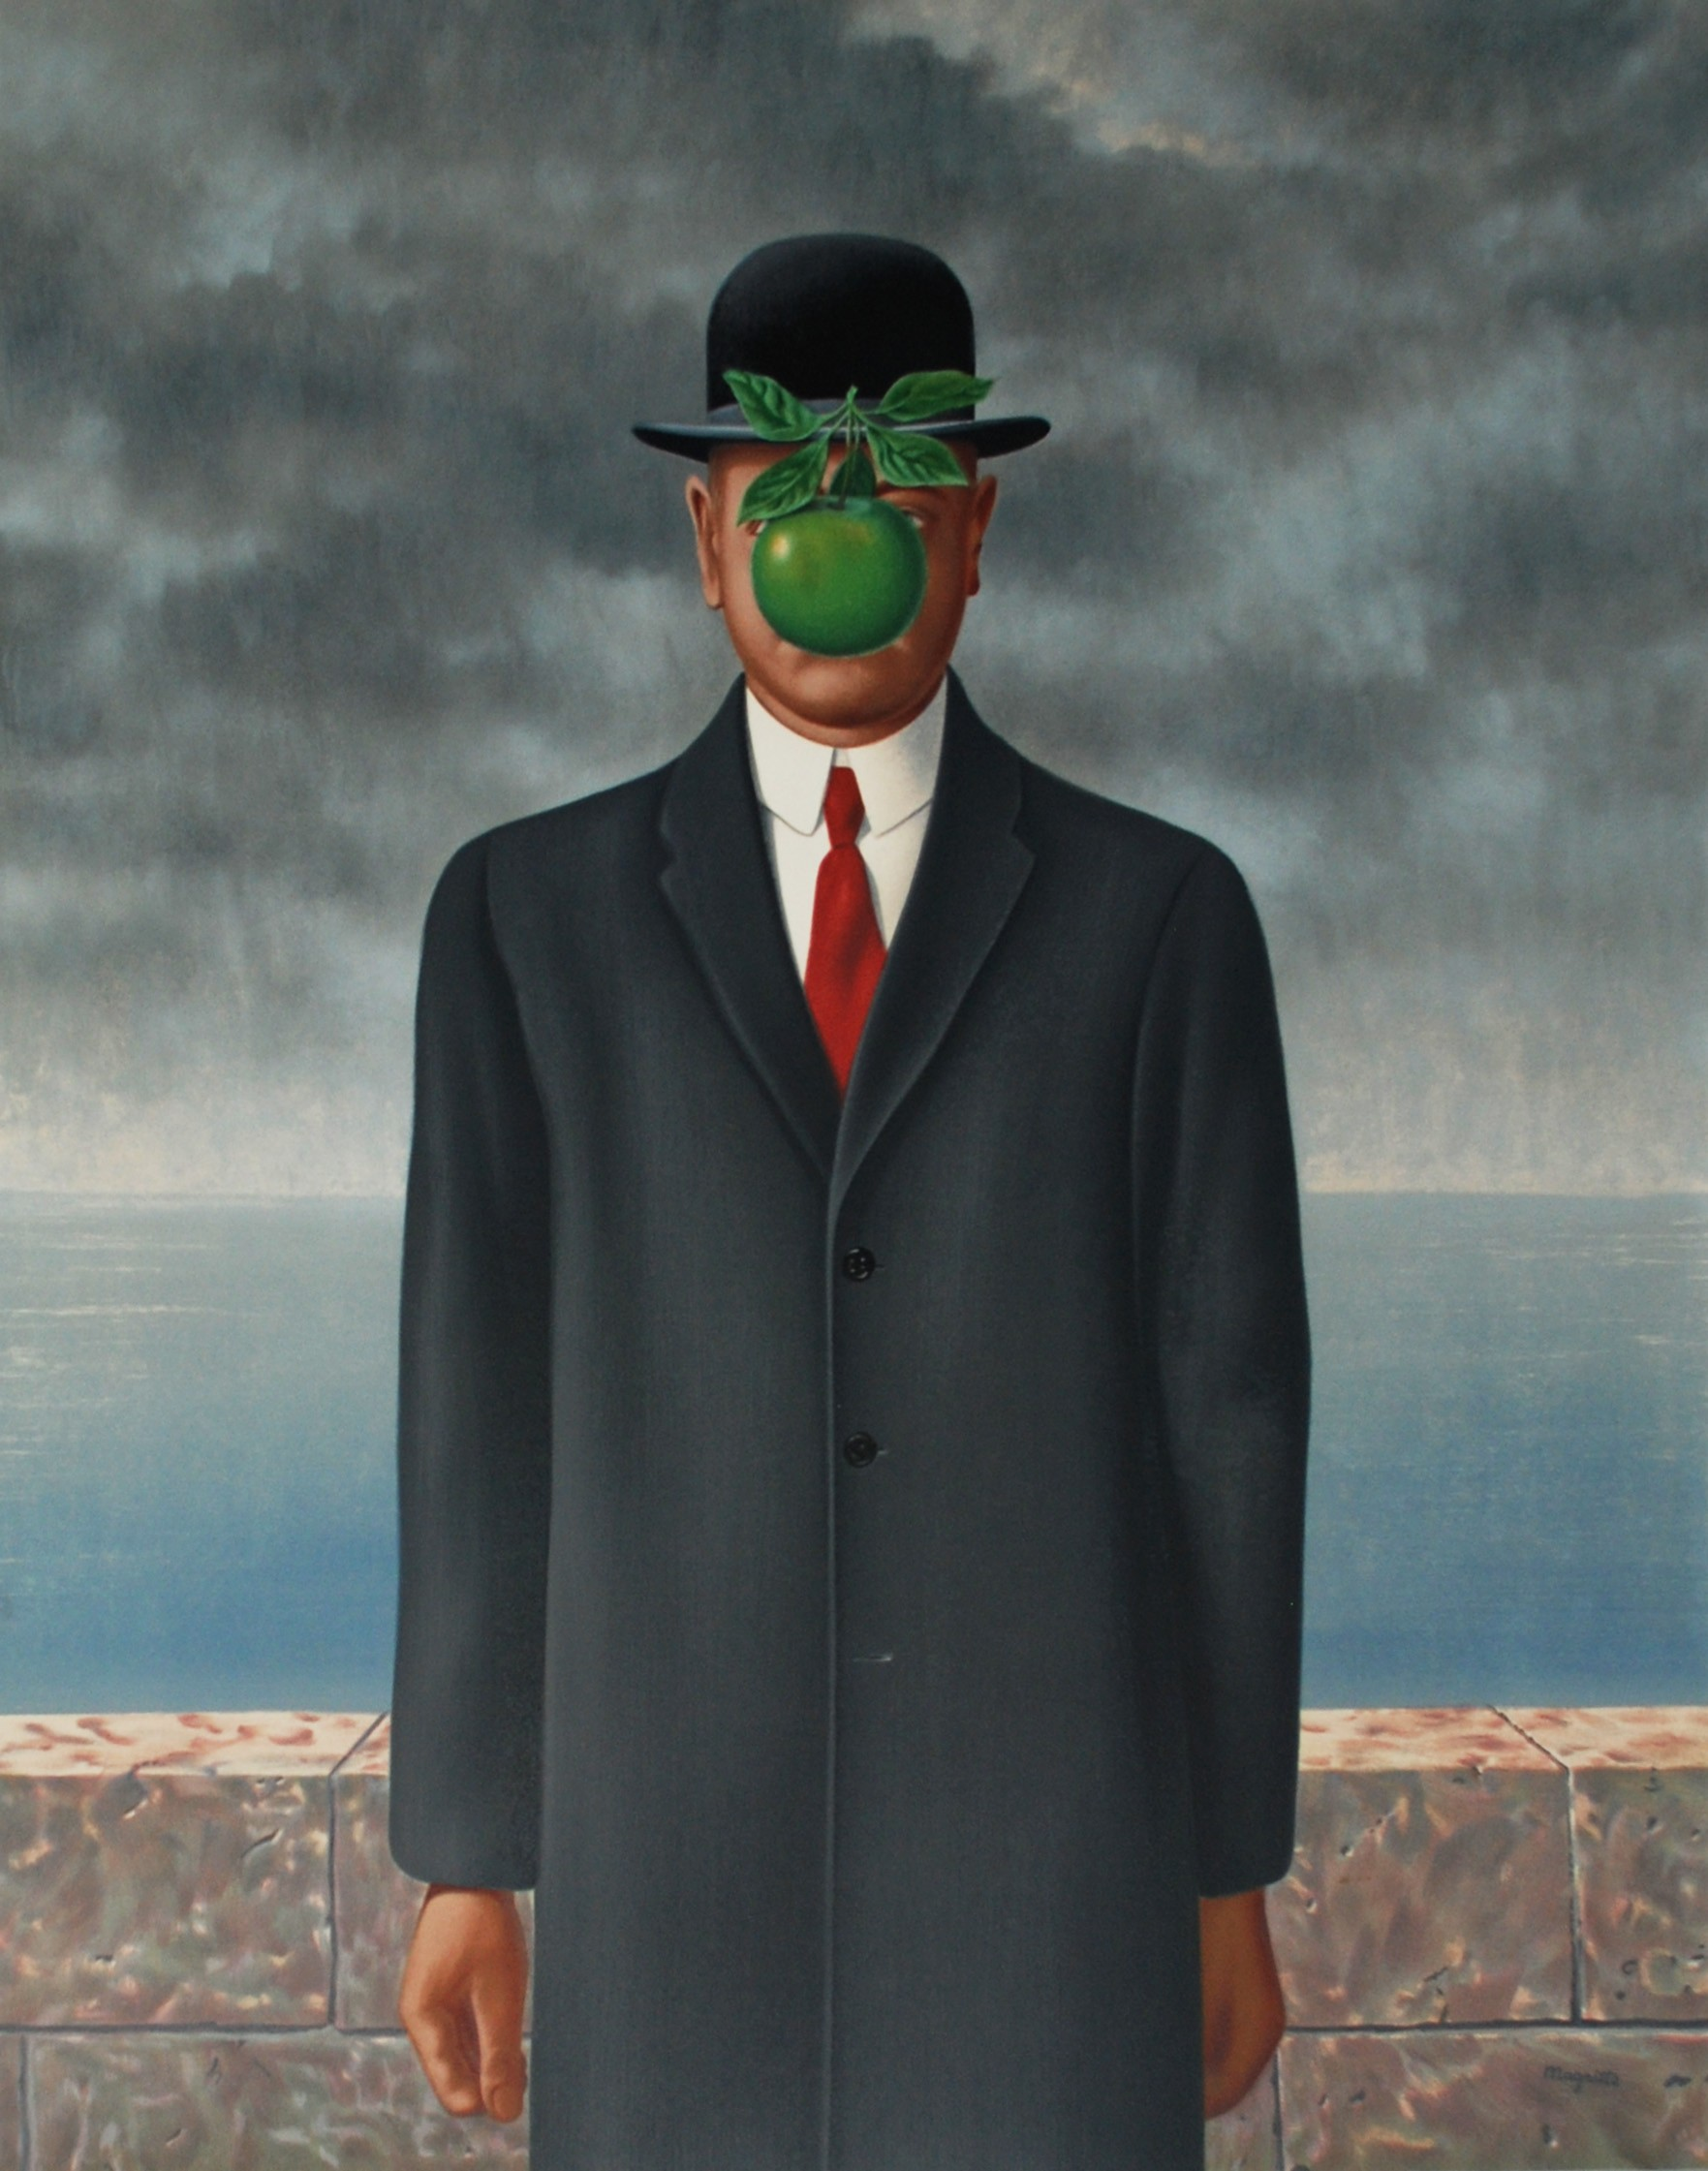 a biography of ren franois ghislain magritte the painter The belgian artist rené magritte (1890-1967) was a surrealist painter famous for bizarre images depicted in a realistic manner many of his paintings showed a dignified gentleman in a bowler hat the belgian painter rené françois chislain magritte in 1940 praised that pictorial experience which.